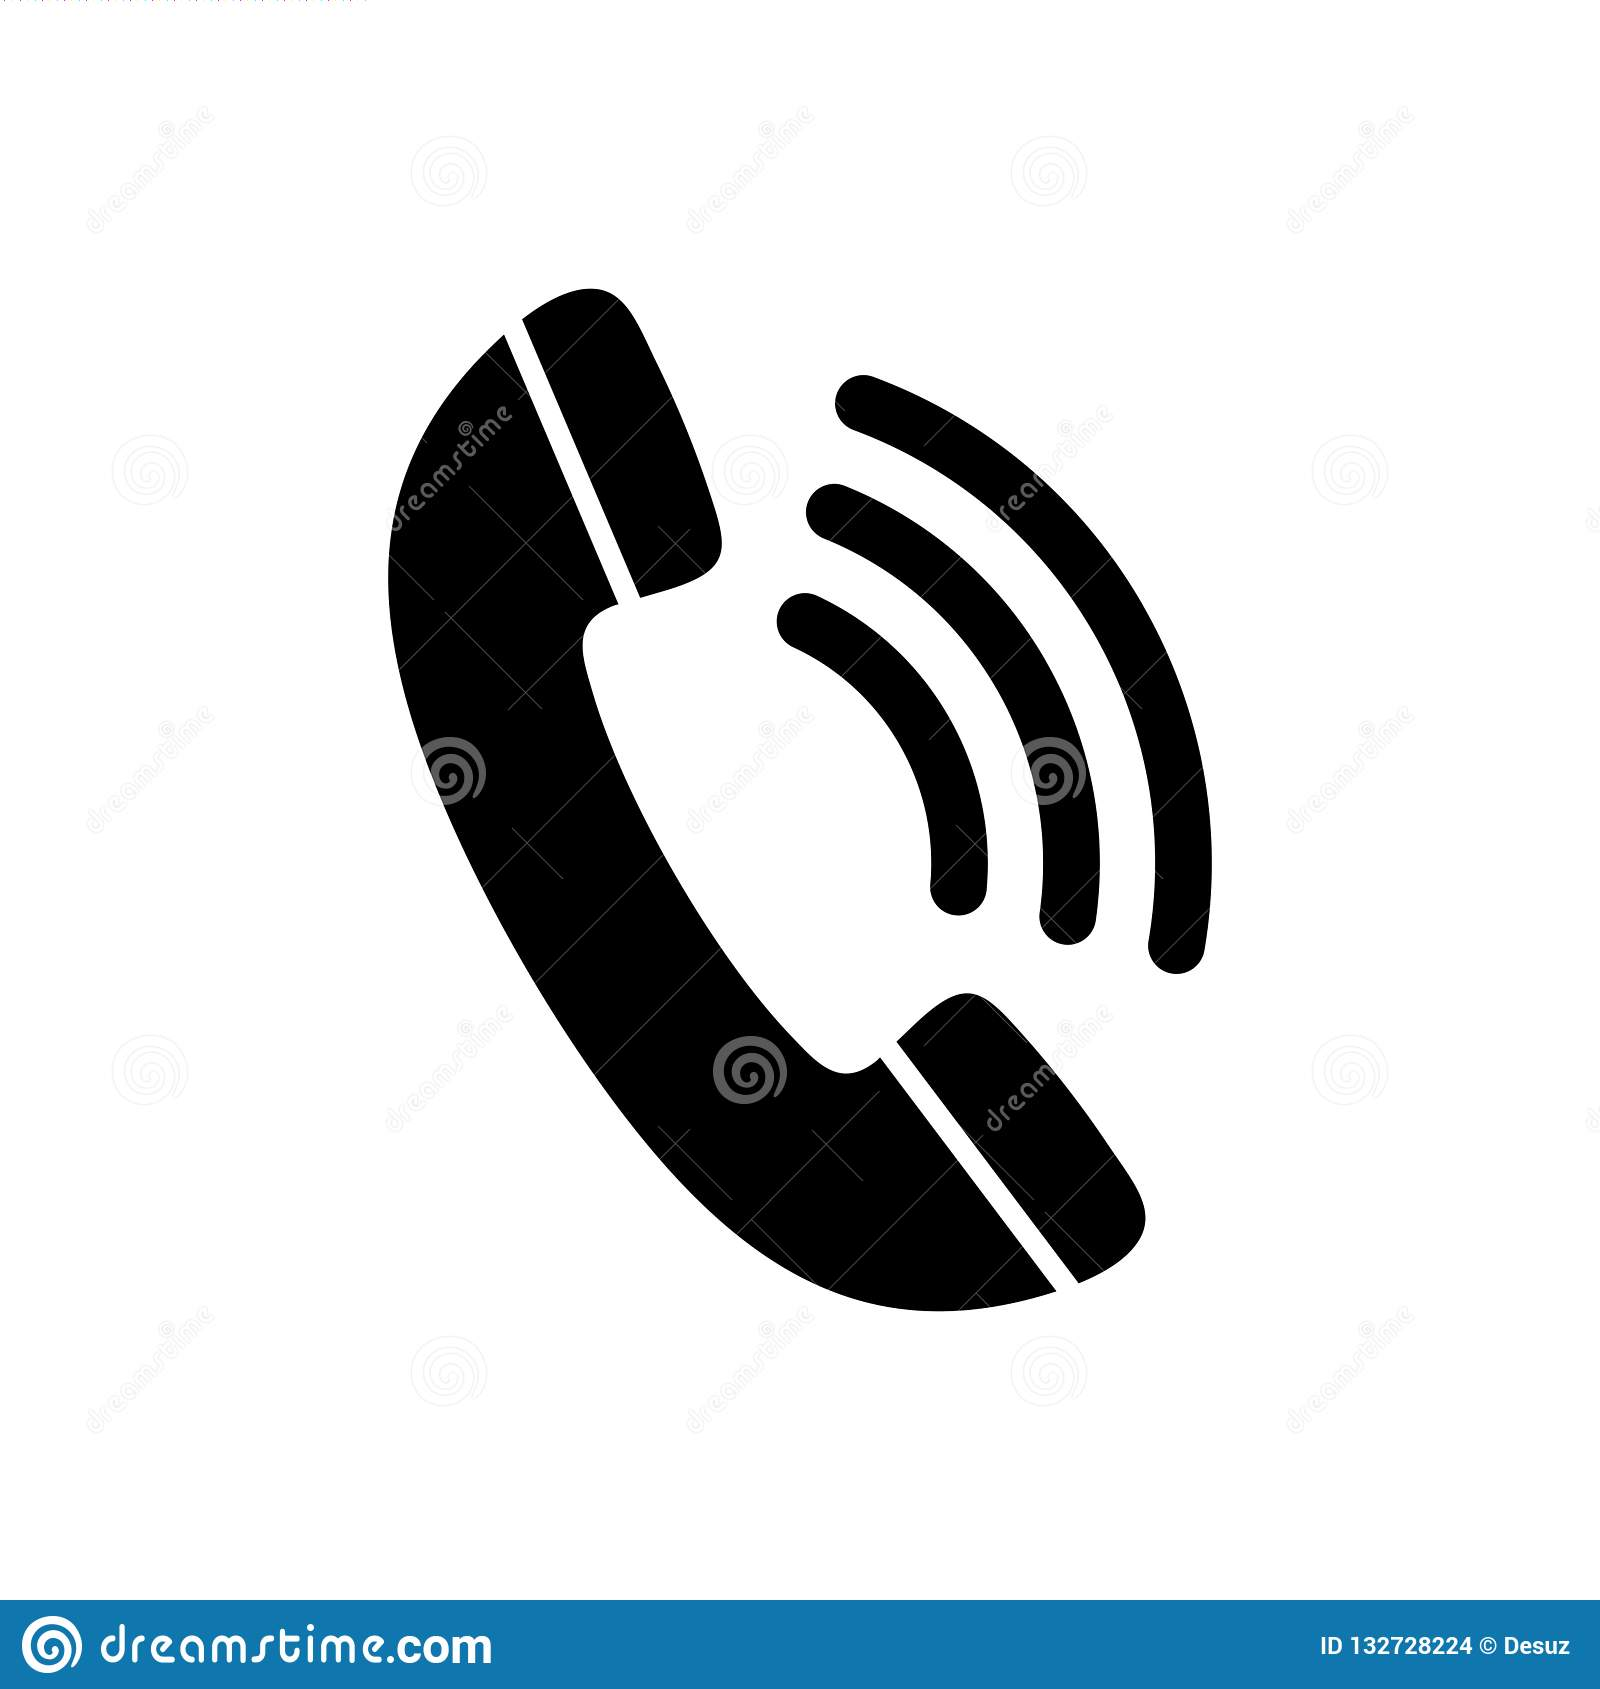 Phone Icon In Black And White Isolated Telephone Symbol Stock Vector Illustration Of Clipart Buttons 132728224